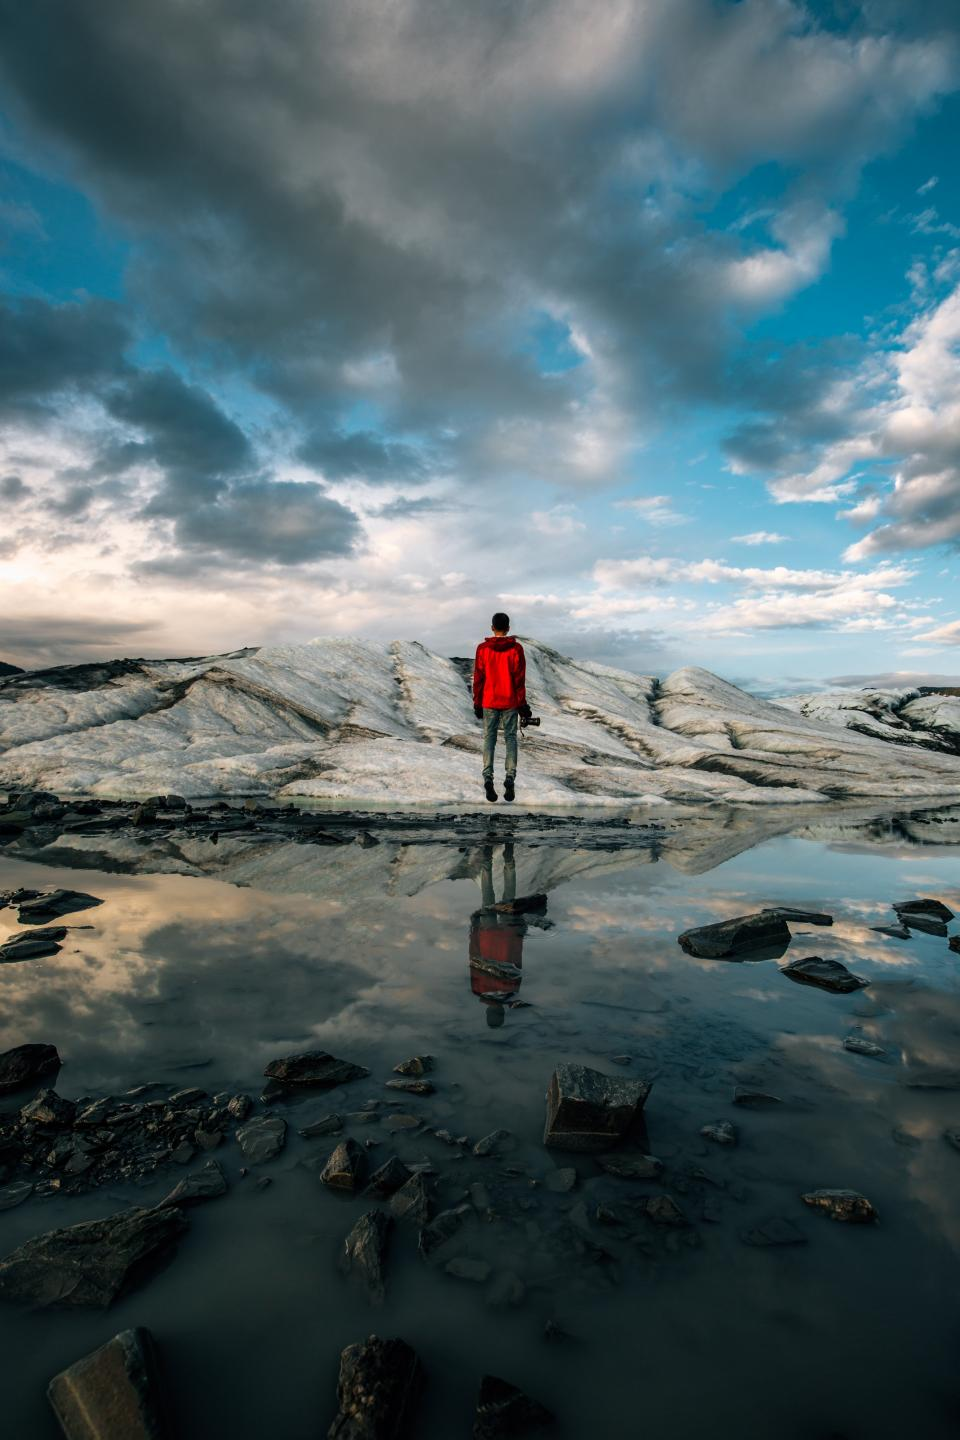 guy man male people back contemplate stand nature landscape rocks slabs water lake puddle reflection sky clouds horizon travel trek photography